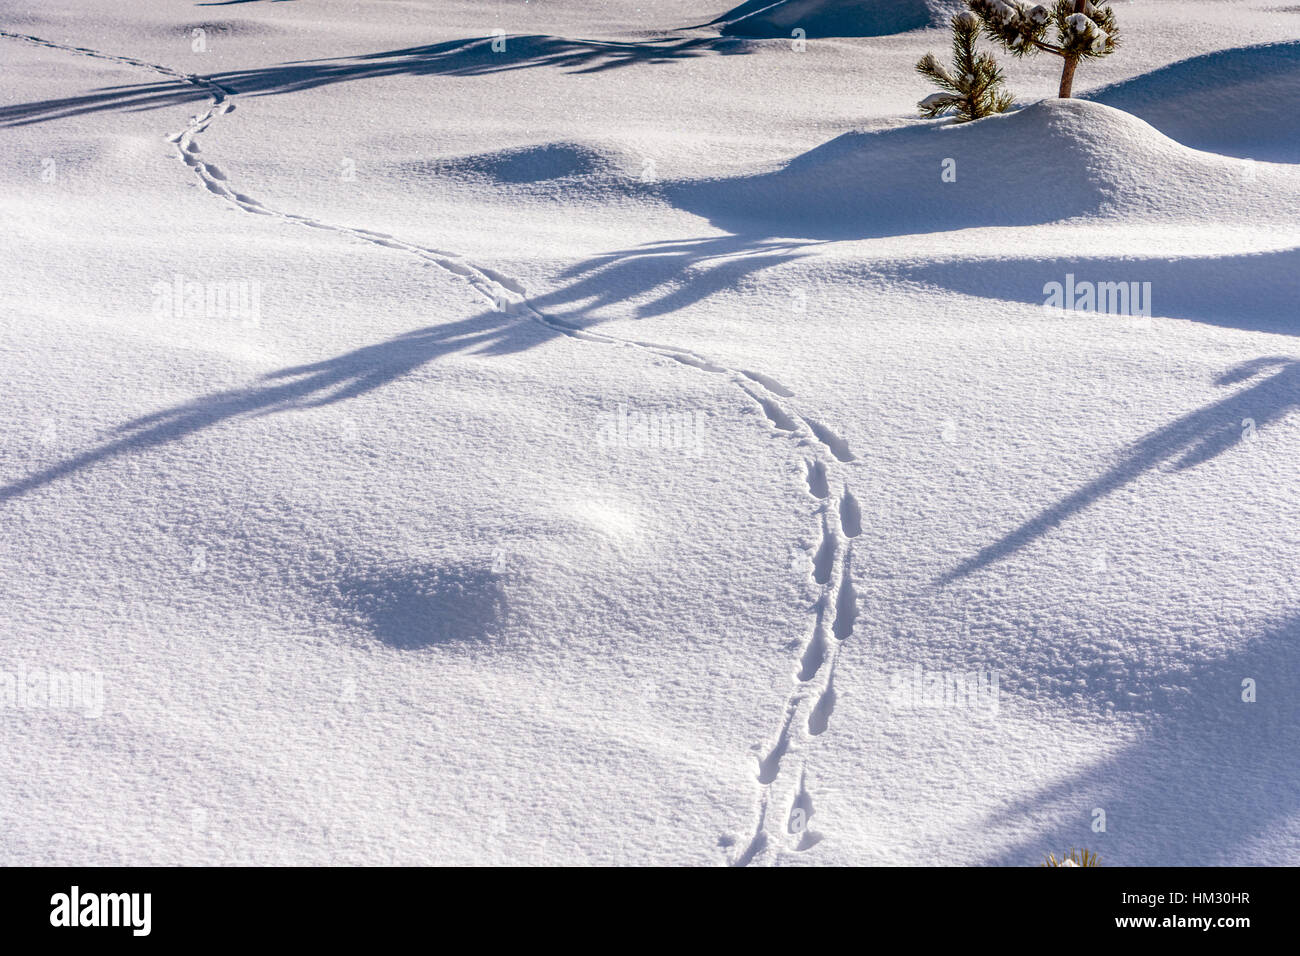 Animal tracks in the snow, Plateau de Beille, French Pyrenees - Stock Image